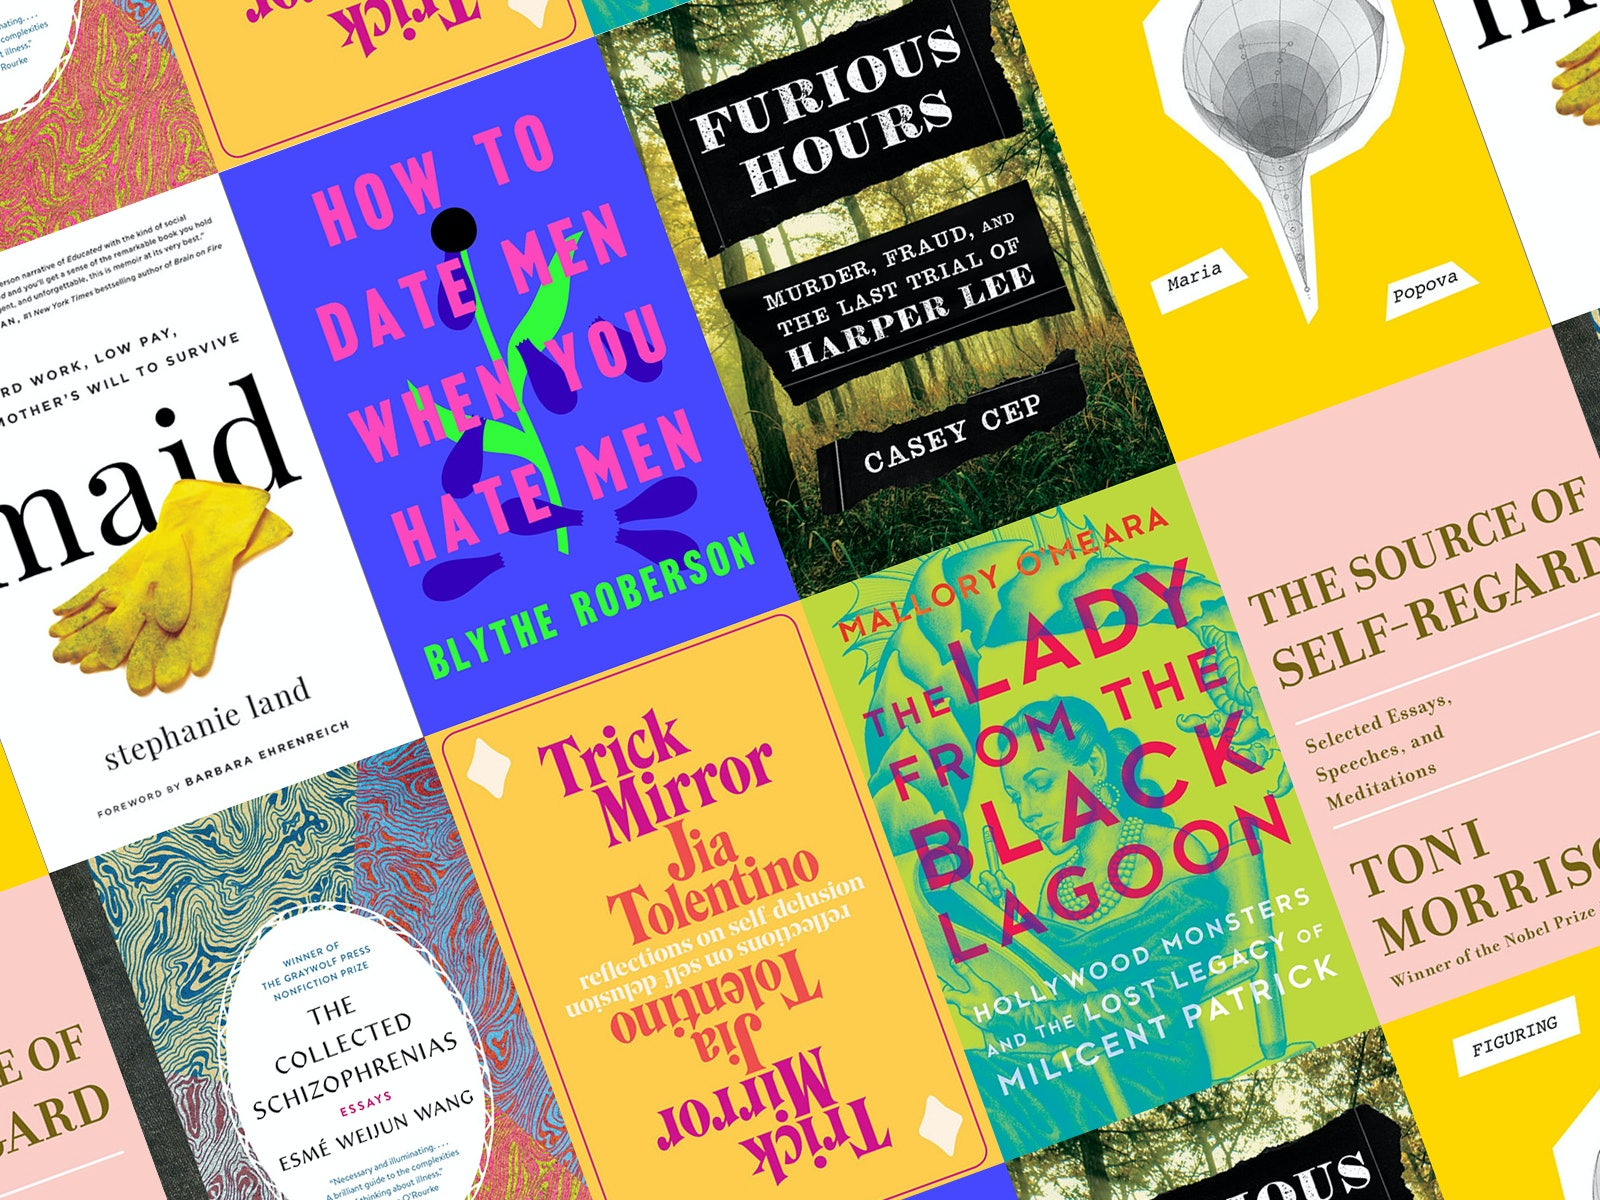 New Nonfiction Books 2020 29 Nonfiction Books Coming Out In 2019 To Start Getting Excited About